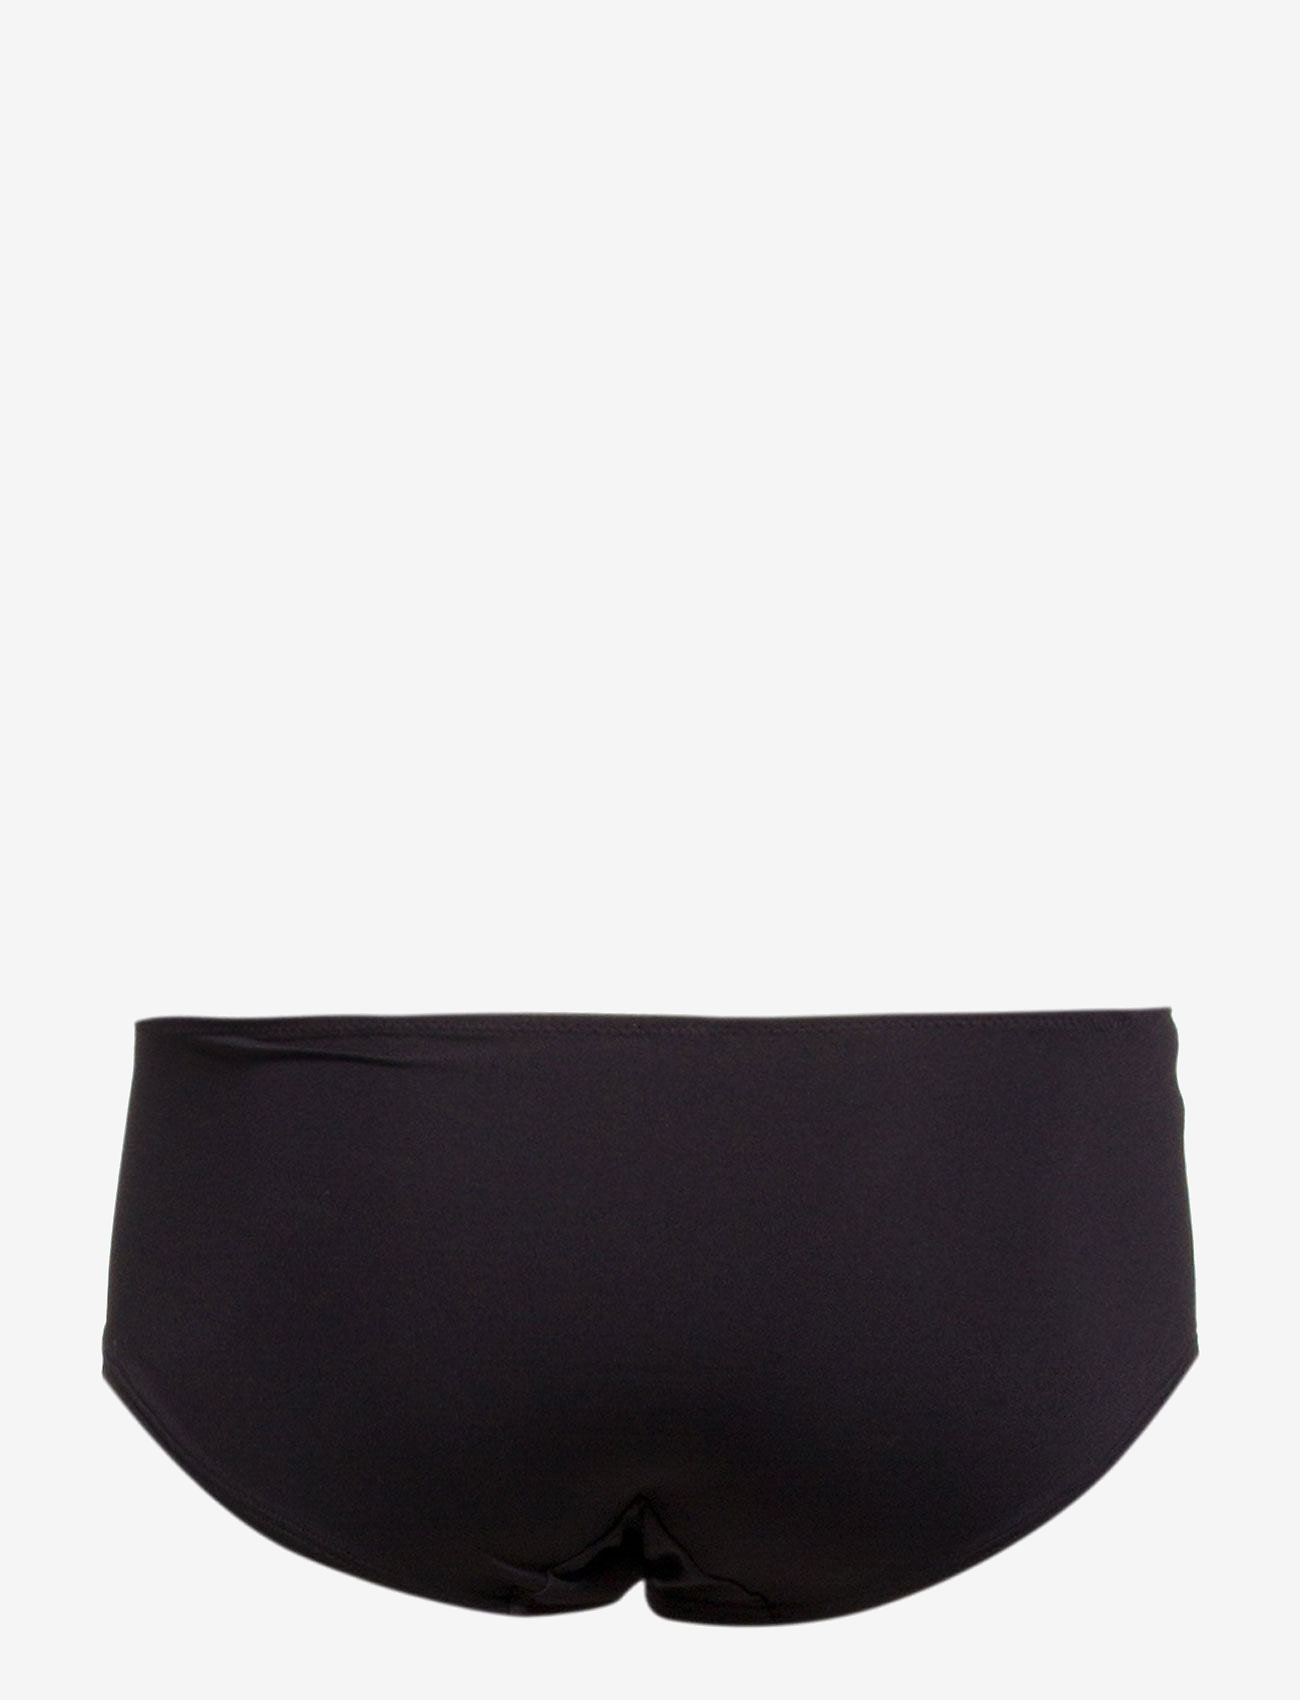 Missya - Mary hipster - hipster & hotpants - black - 1